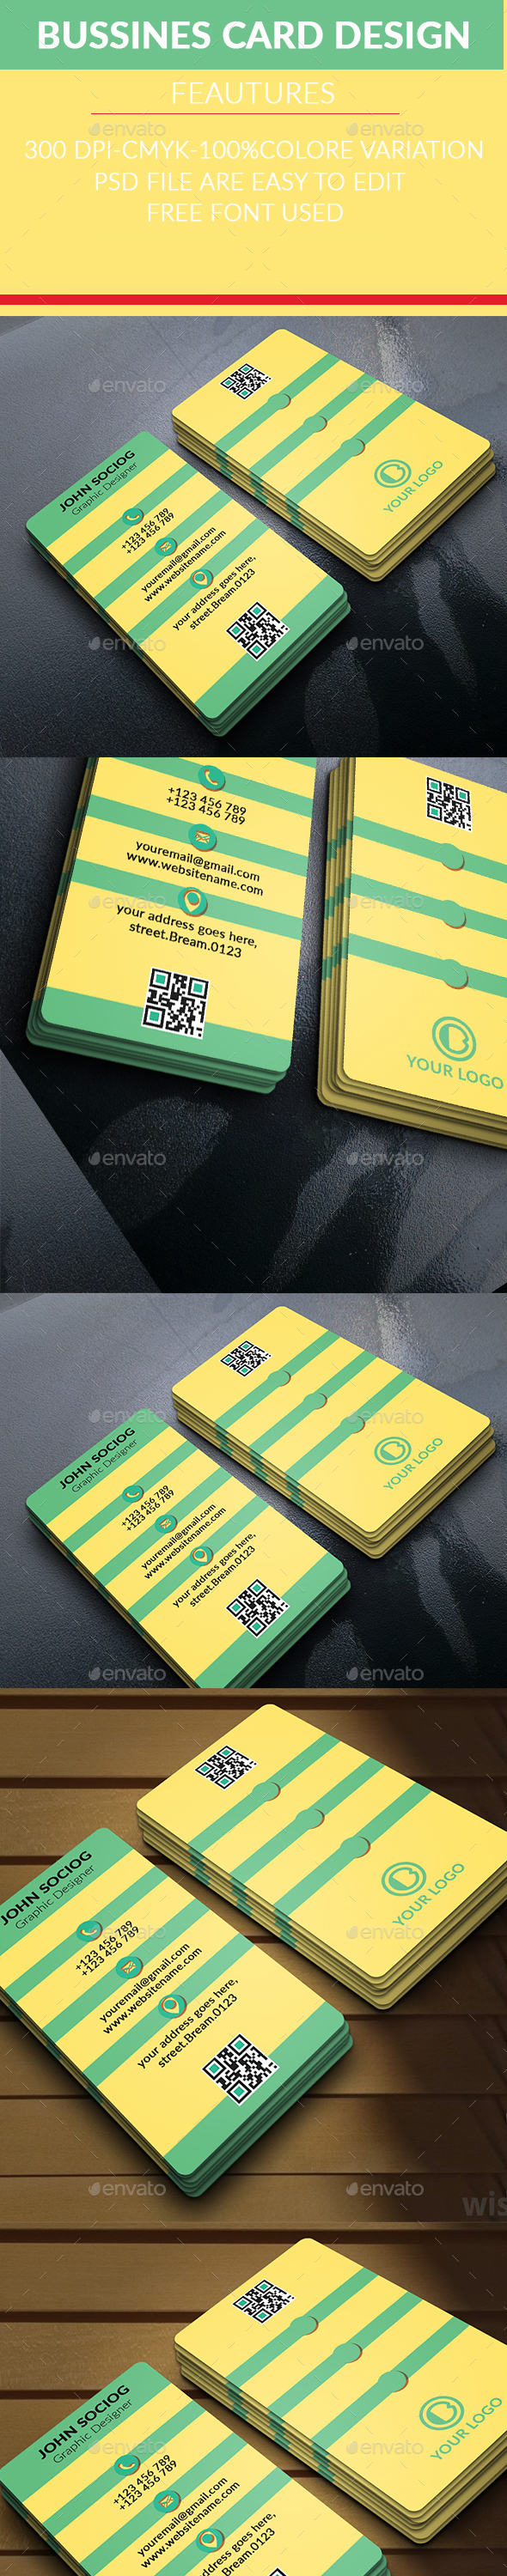 New Corporate Business Card 2 - Business Cards Print Templates